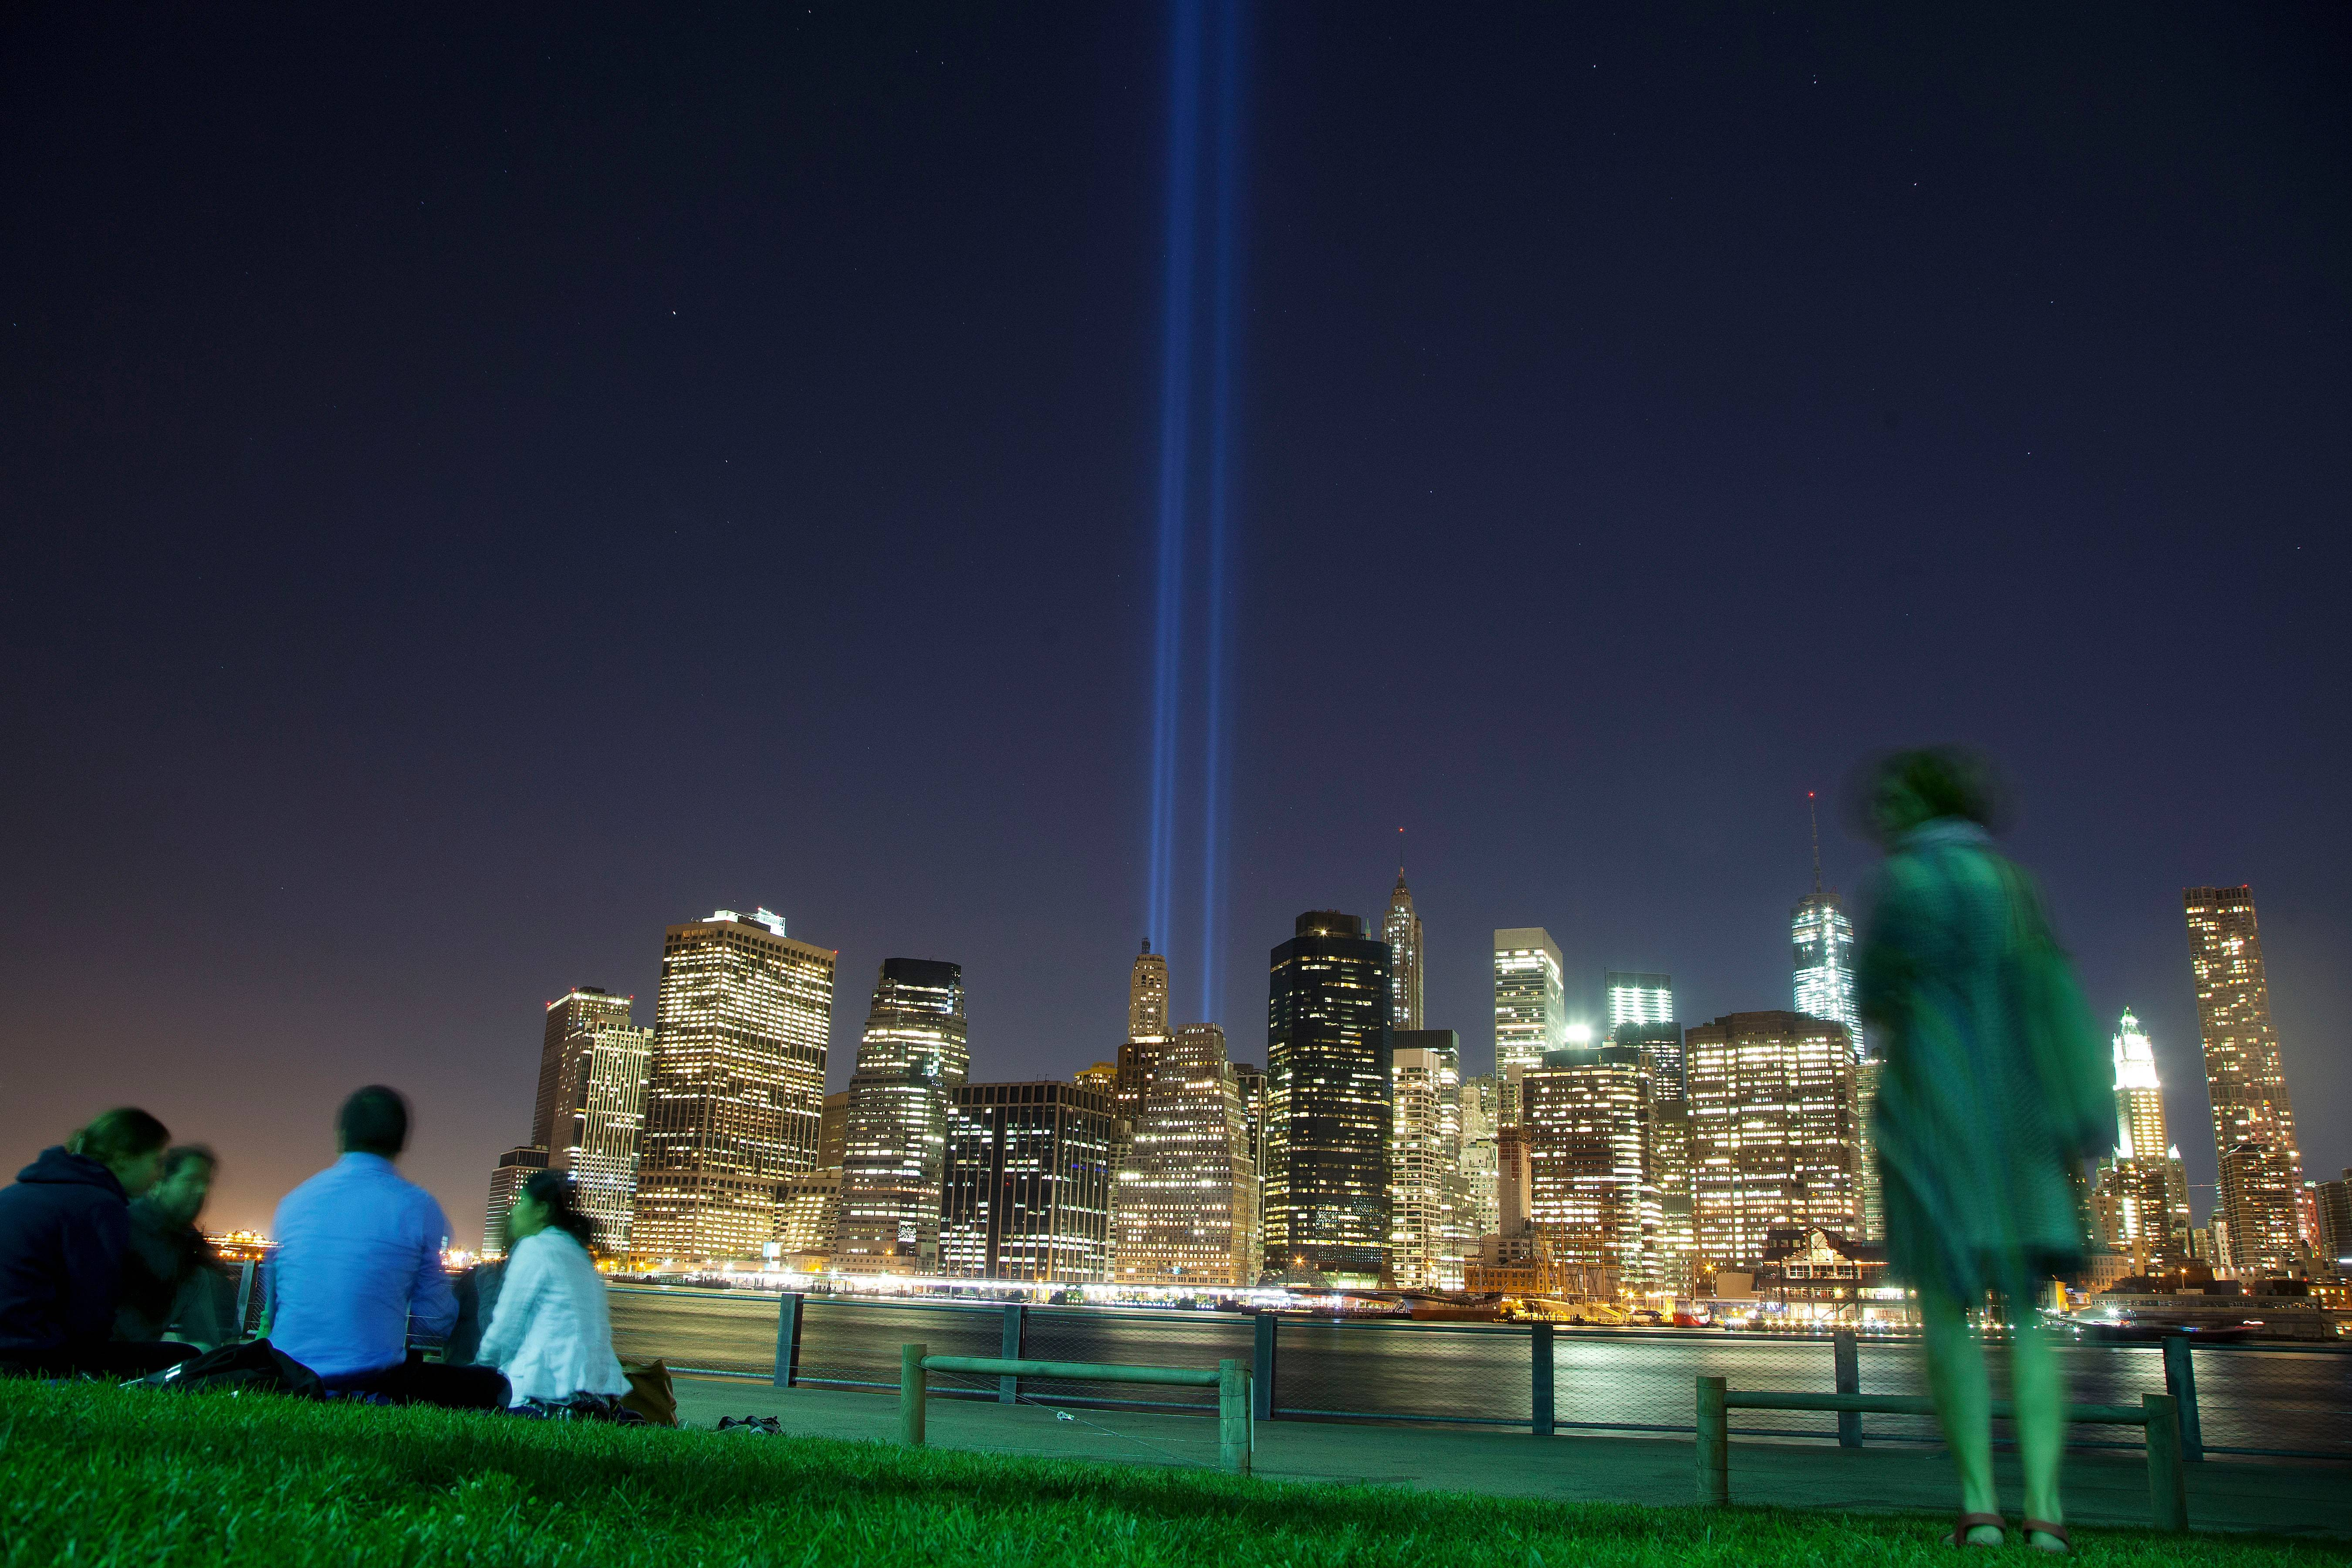 People in Brooklyn Bridge Park gather to watch the Tribute in Light rising from the lower Manhattan skyline in New York. The Tribute is on display Sept. 11 every year to mark the anniversary of the terrorist attacks.